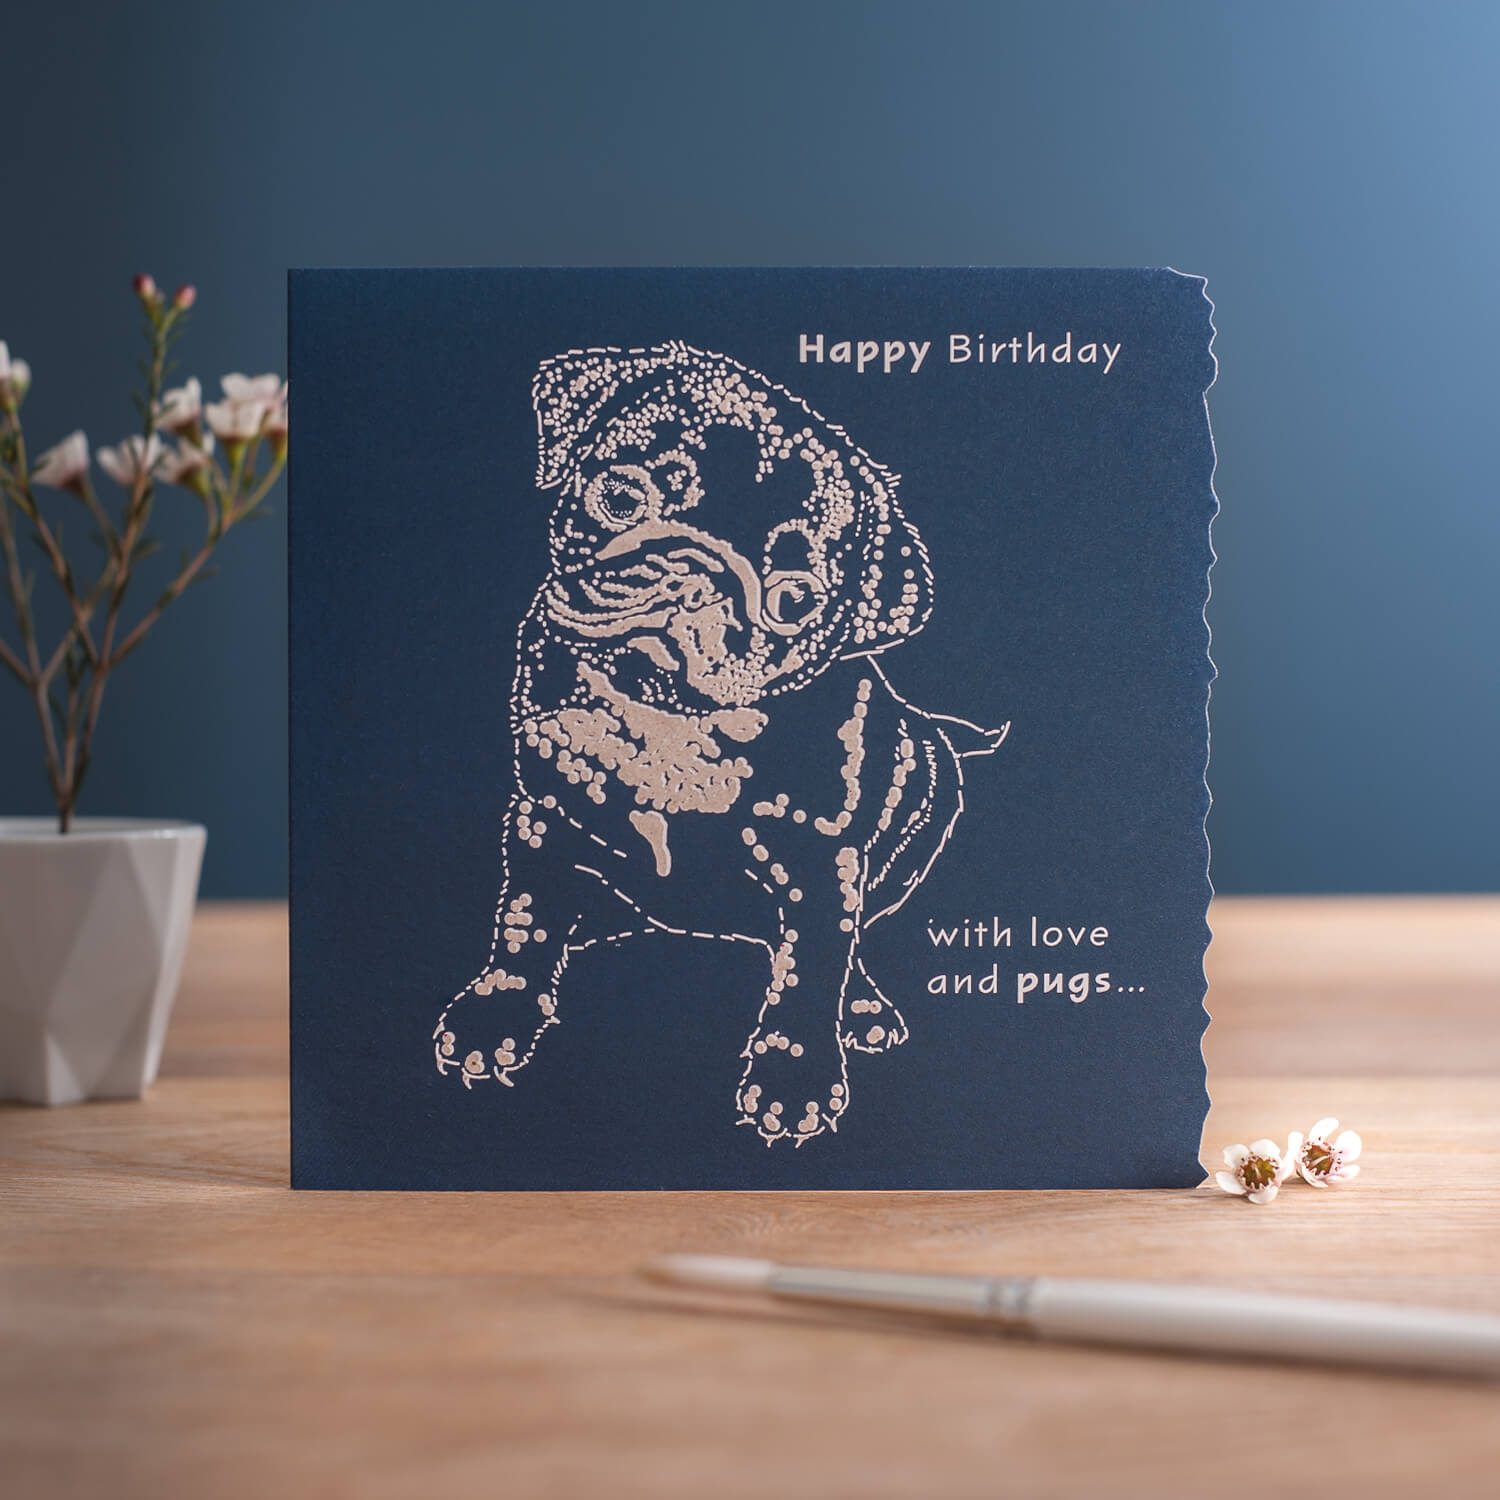 Single product photograph of greetings card including minimal props